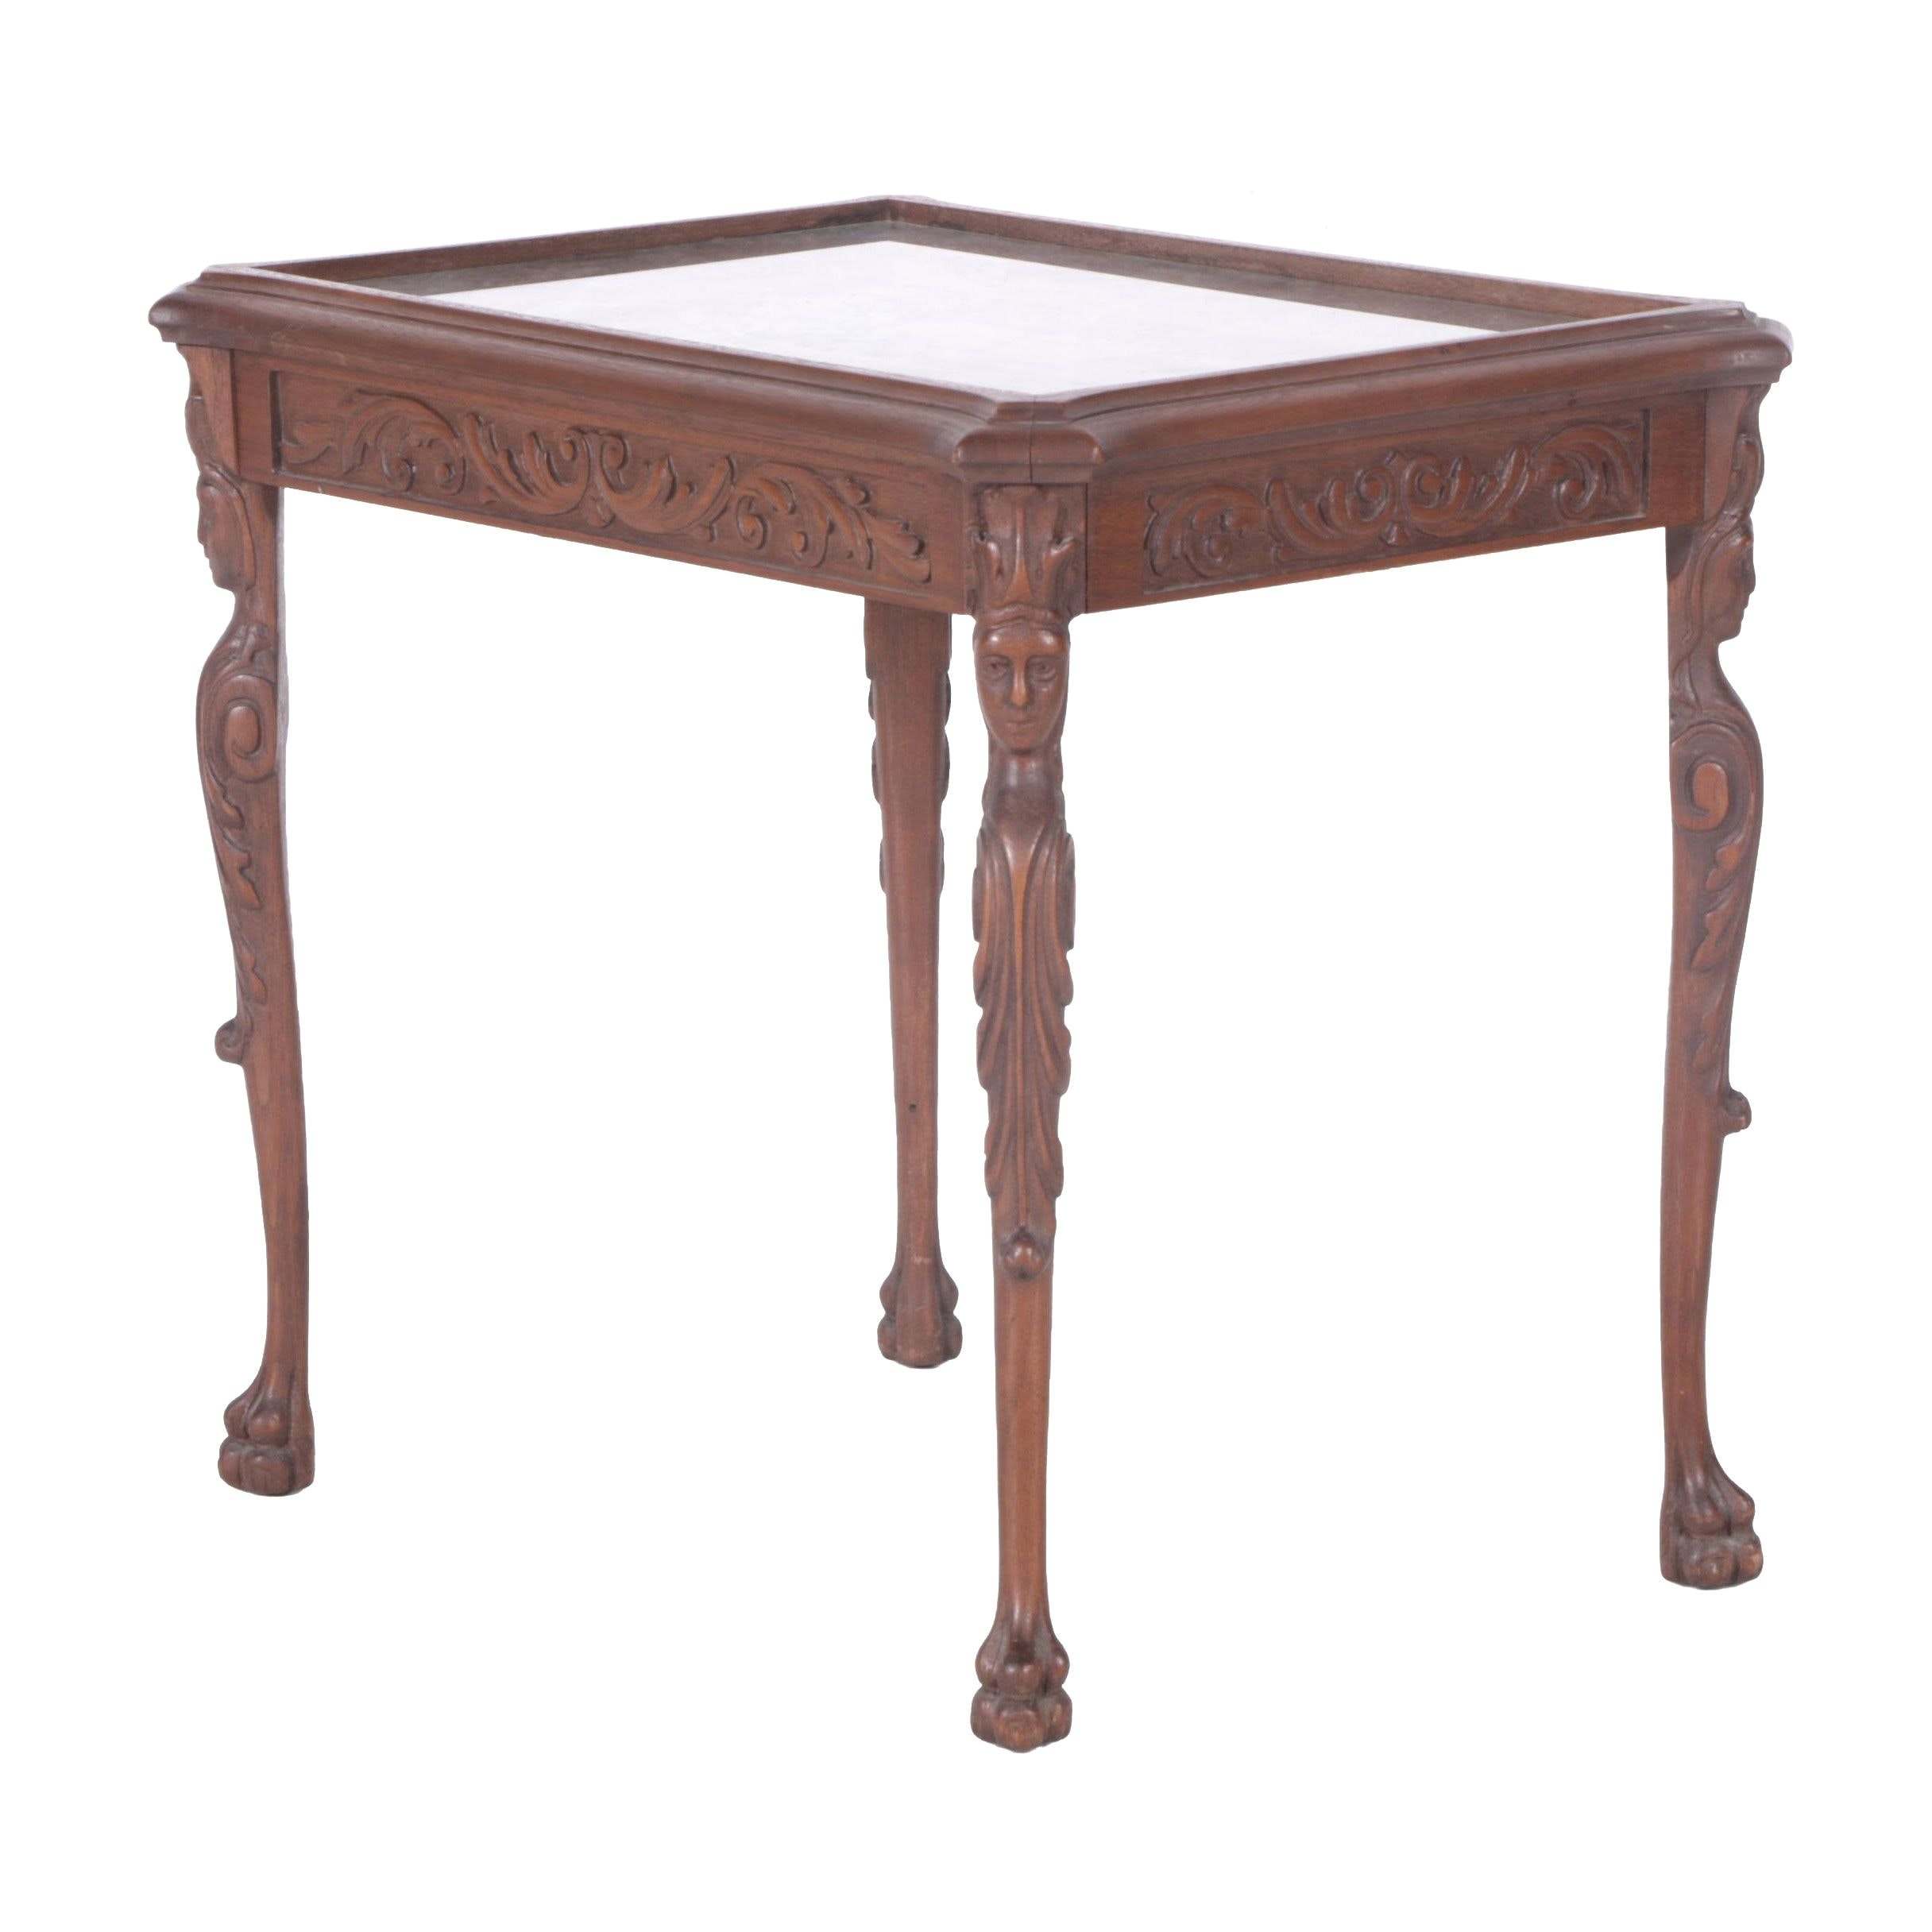 Rococo Style Carved Walnut and Glass Top Table